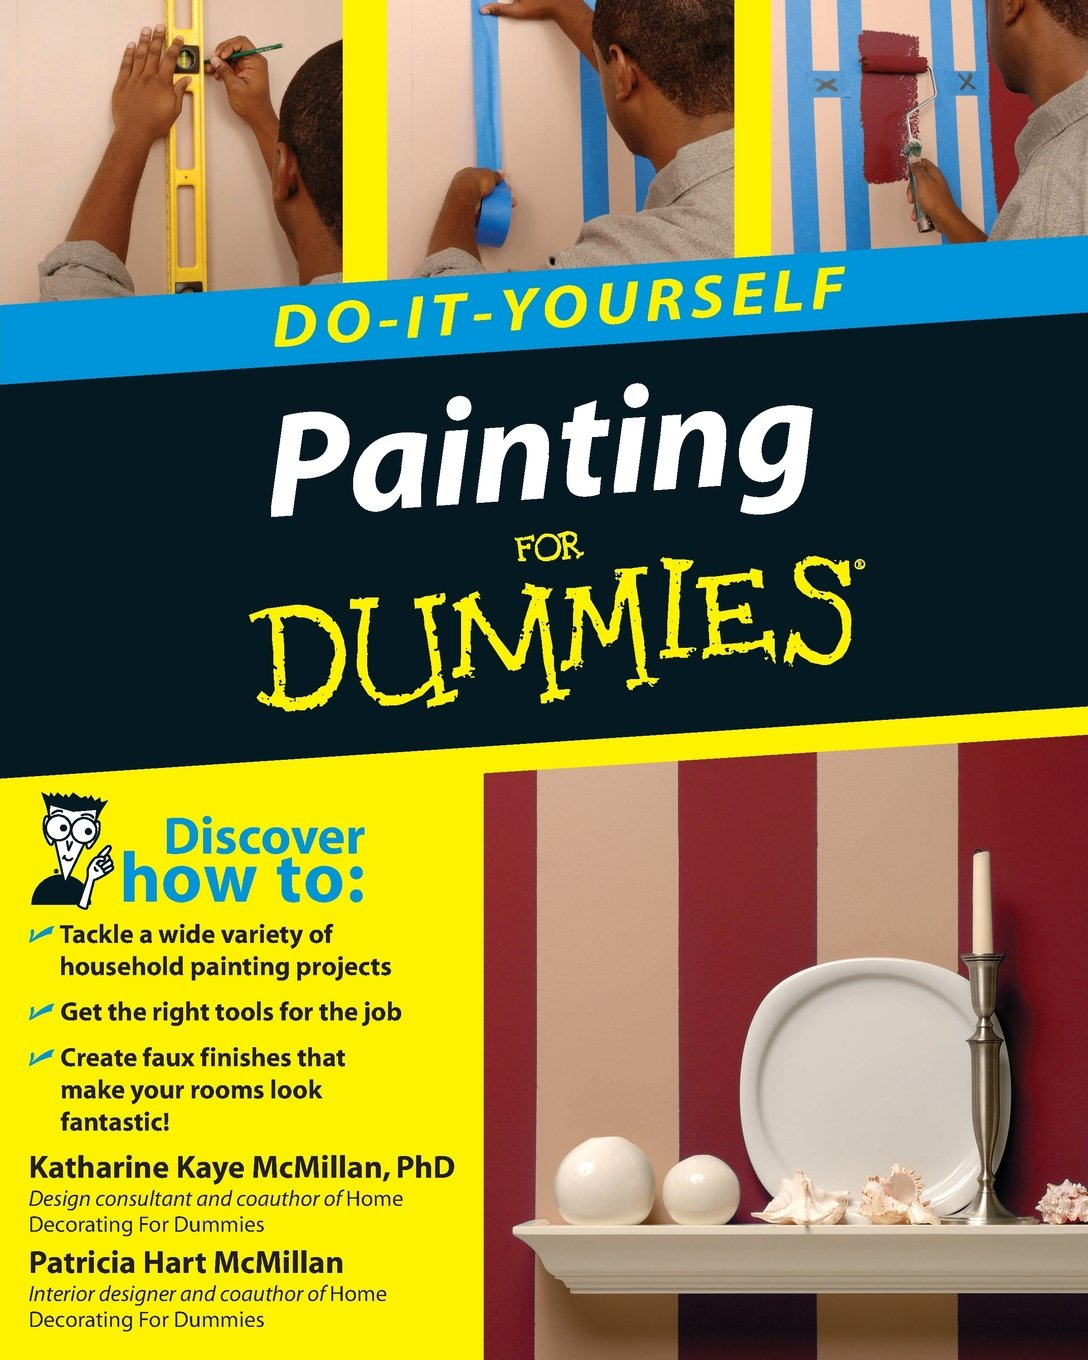 Painting do it yourself for dummies katharine kaye mcmillan painting do it yourself for dummies katharine kaye mcmillan patricia hart mcmillan 9780470175330 amazon books solutioingenieria Choice Image